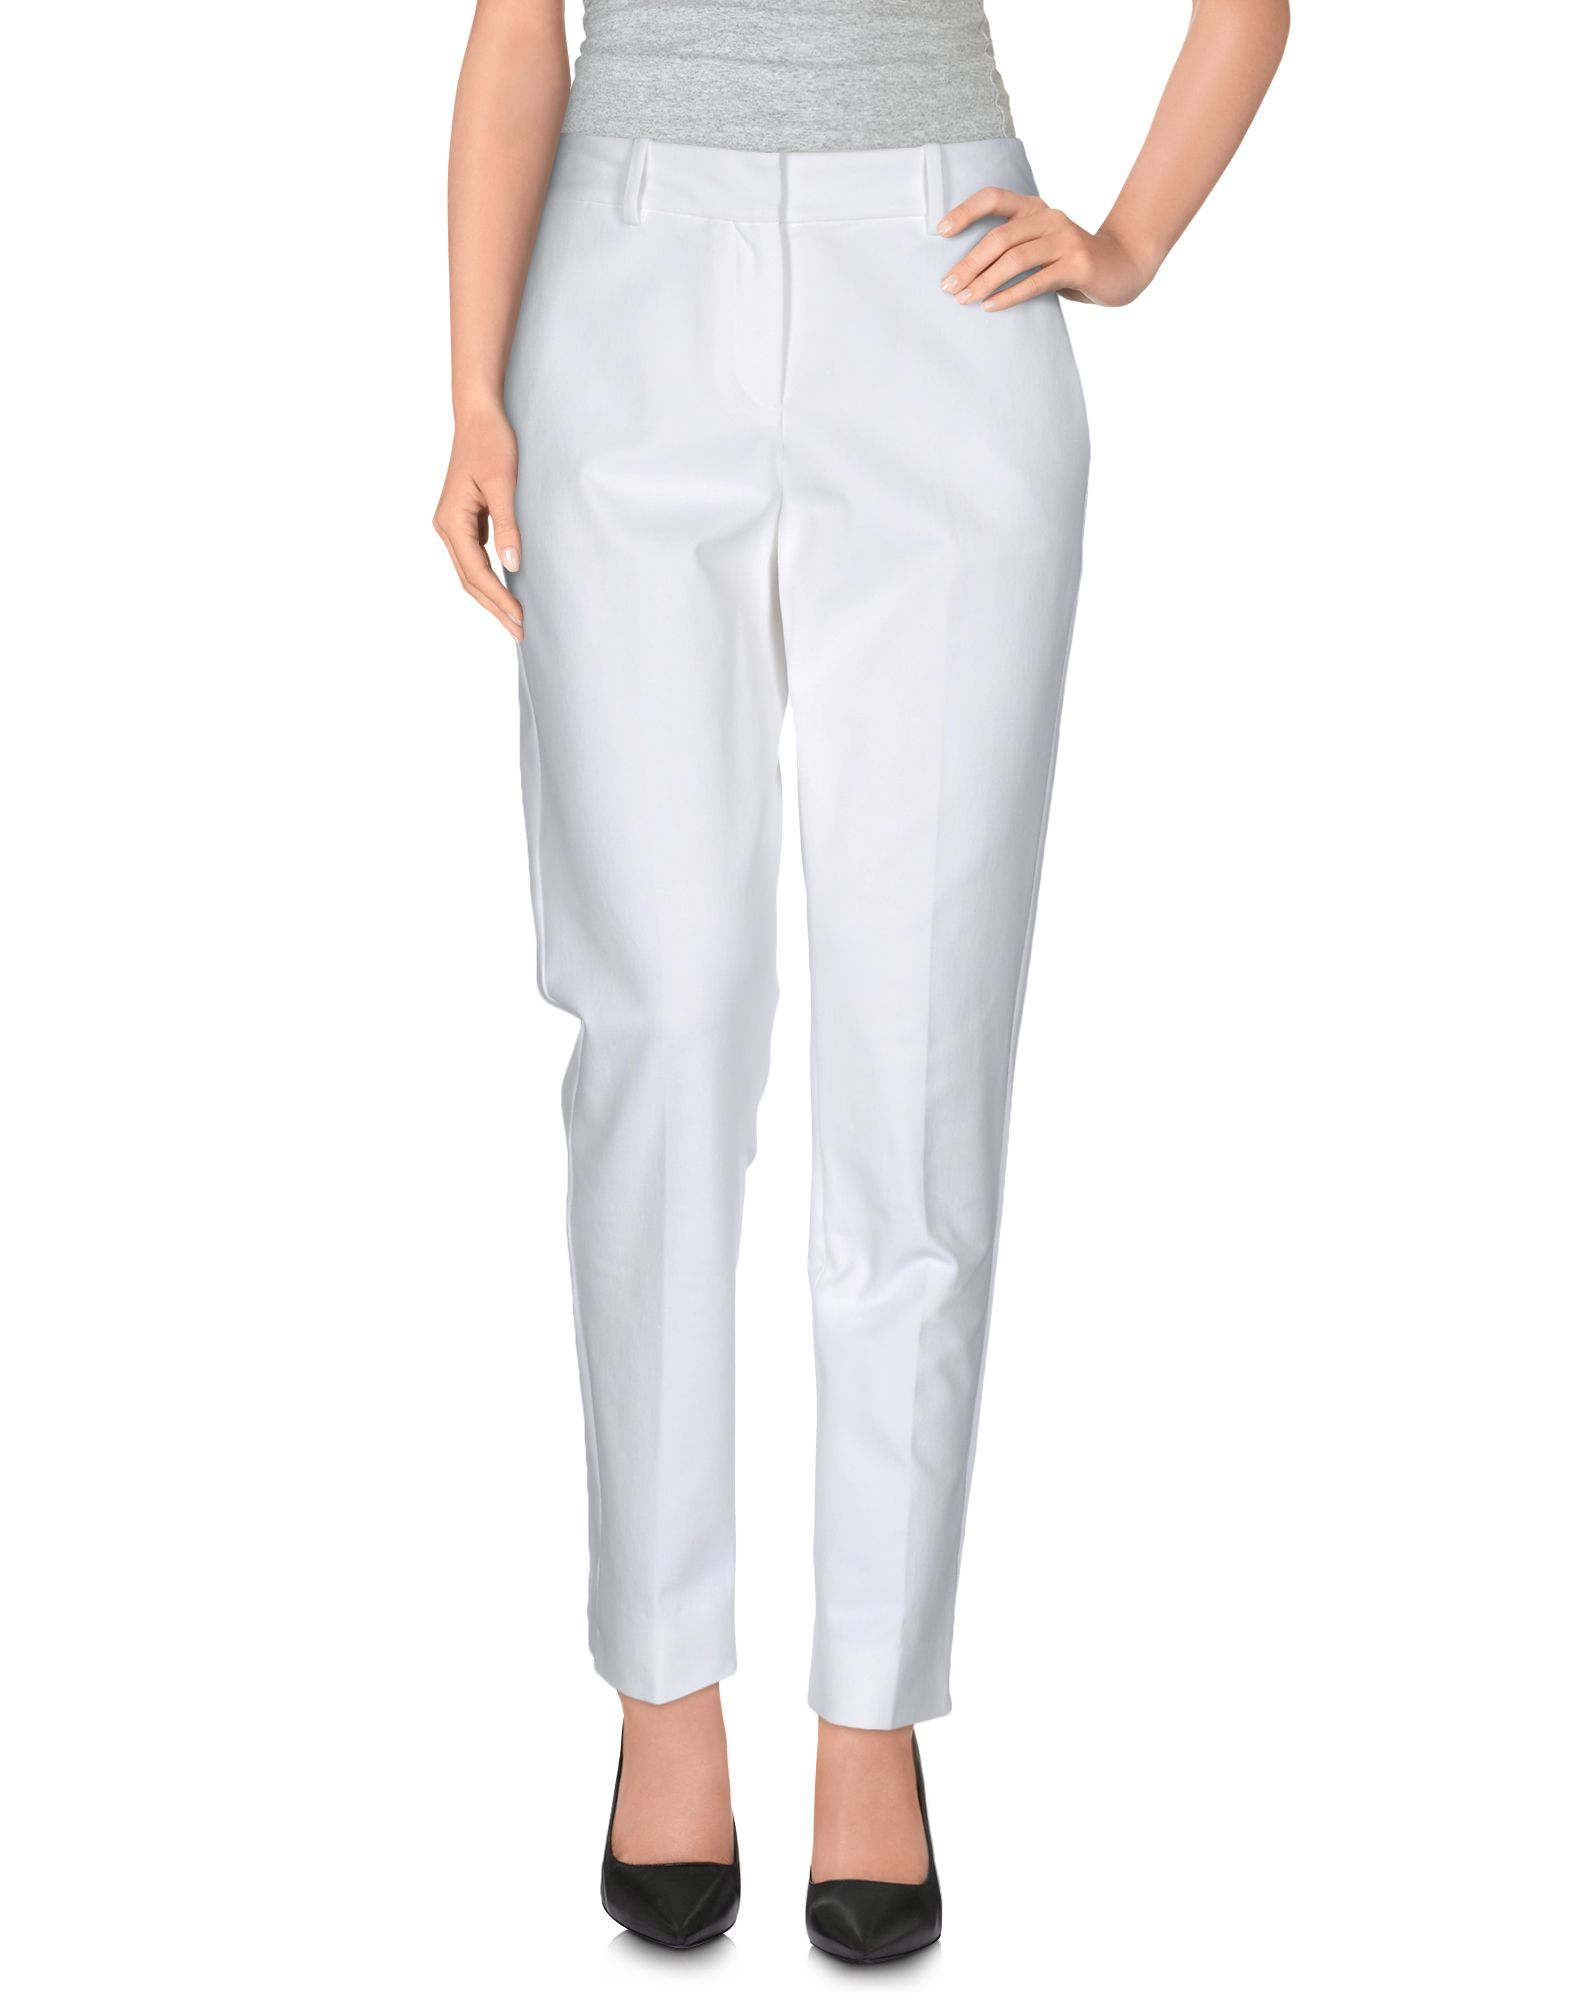 Pantalone Theory Donna - Acquista online su alY9yvnbY